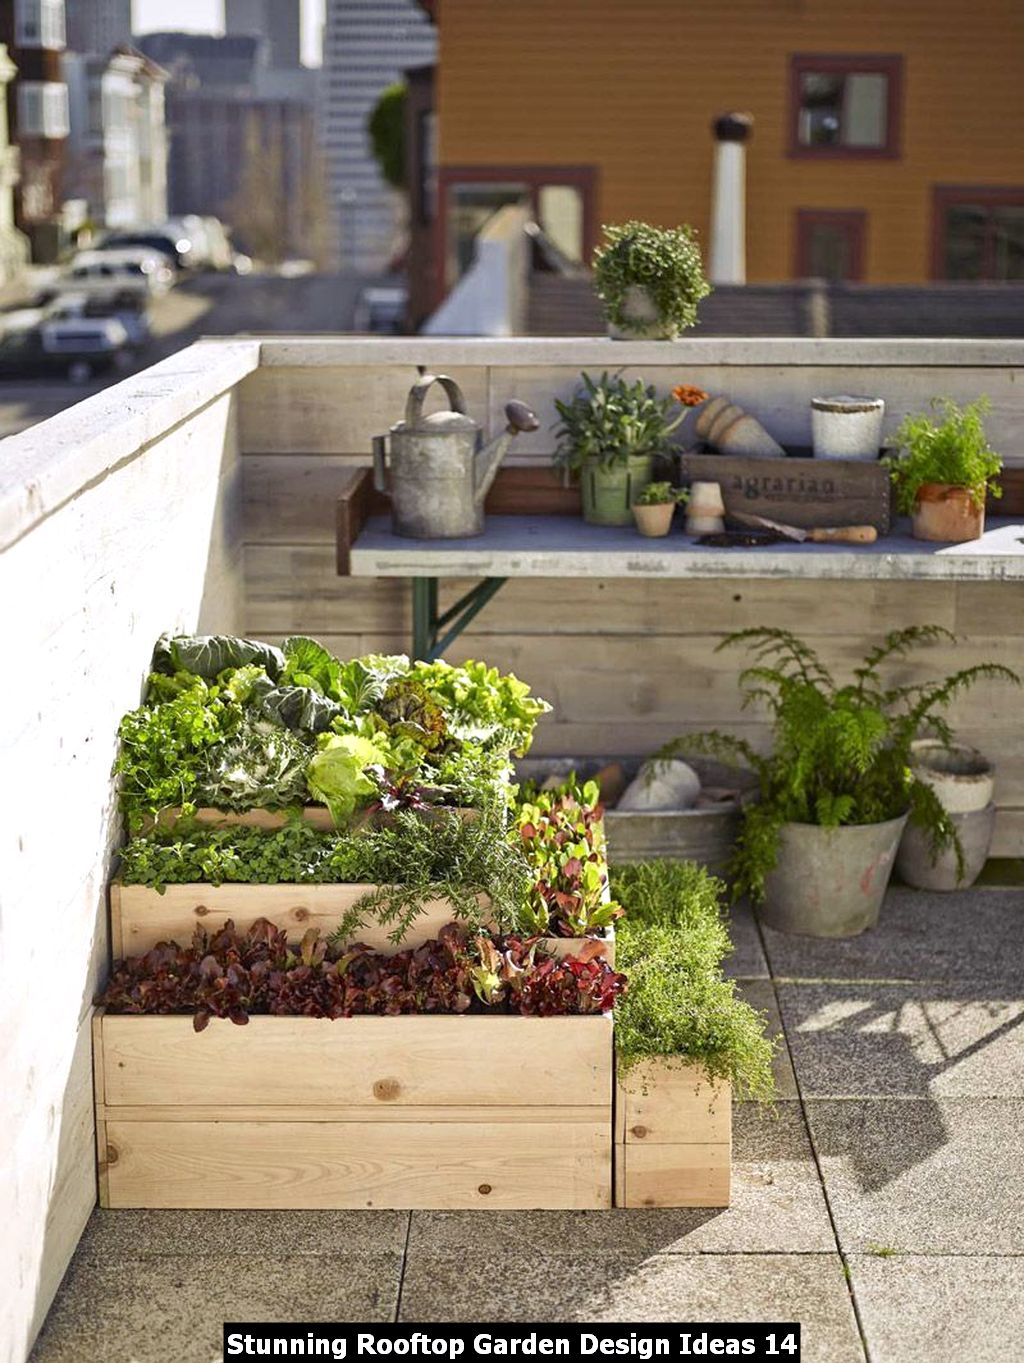 Stunning Rooftop Garden Design Ideas 14